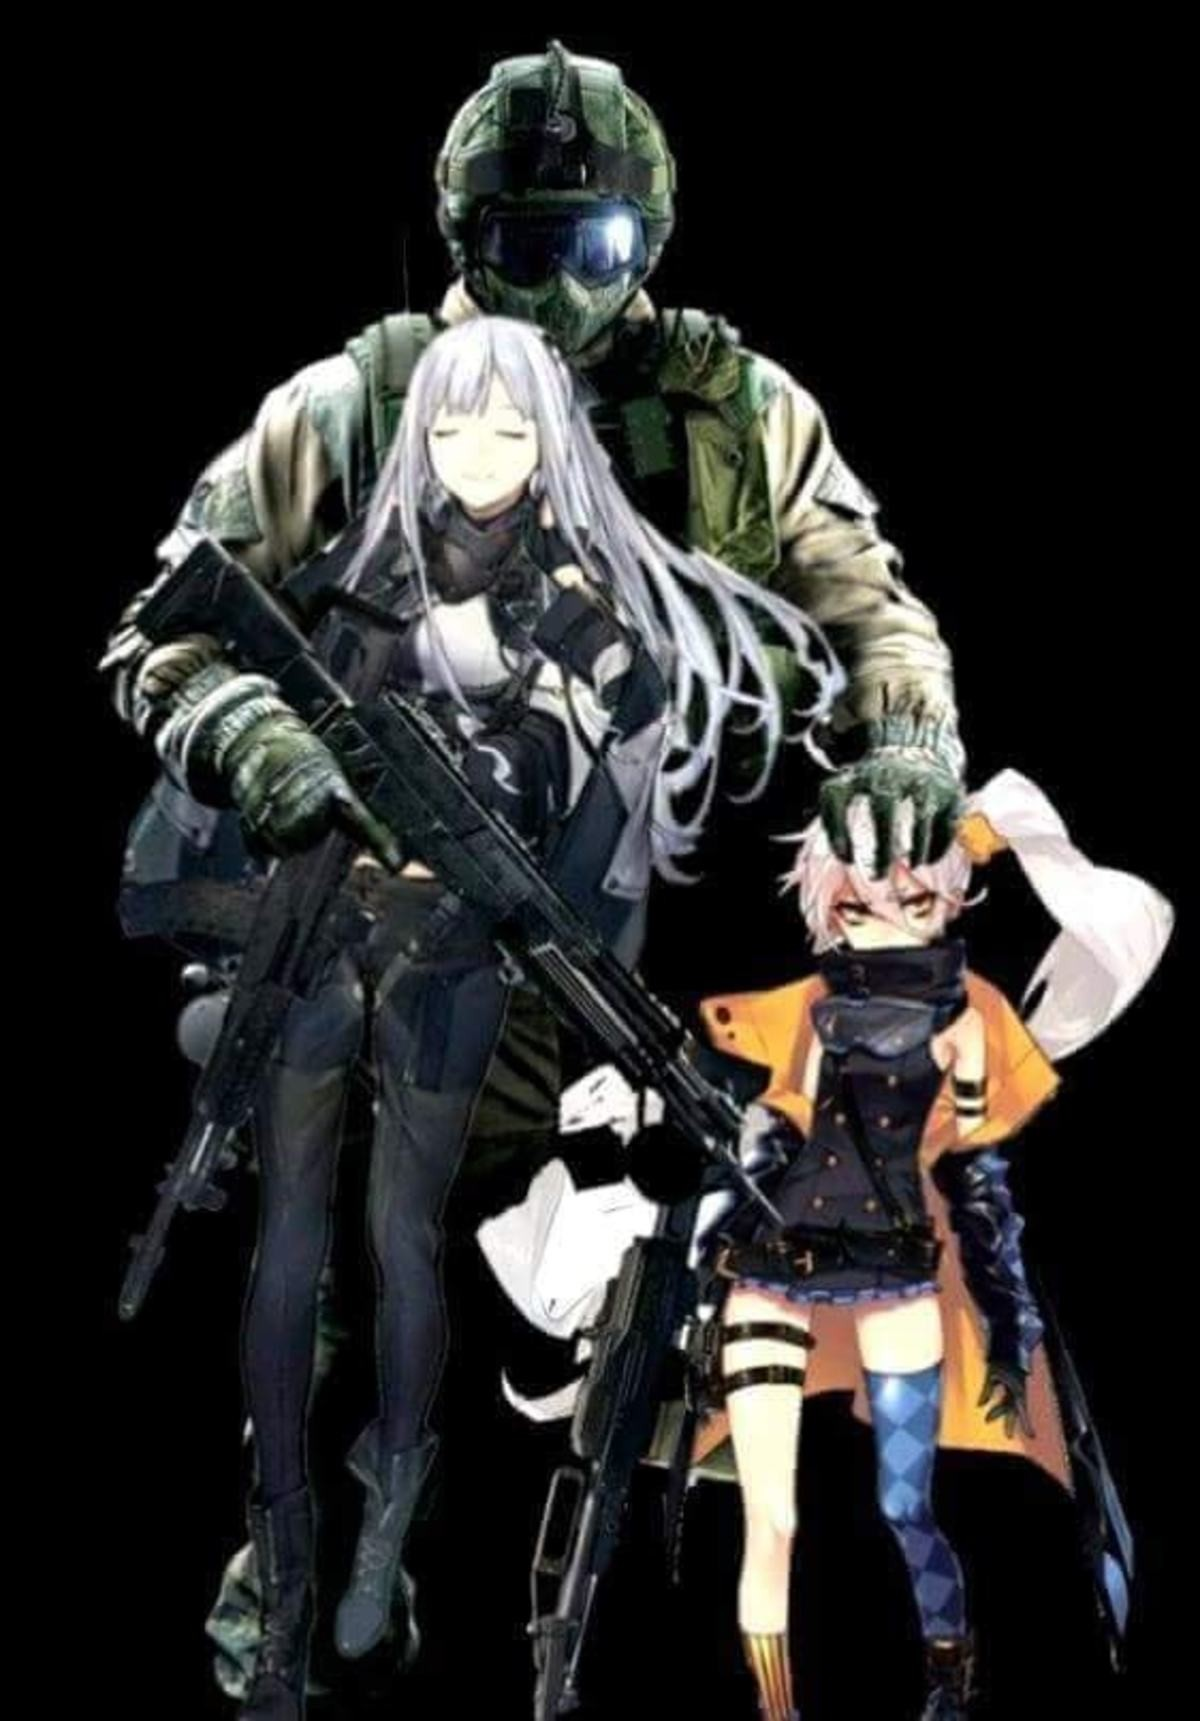 Rainbow Six Siege X Girl's Frontline. join list: GirlsFrontline (609 subs)Mention Clicks: 135182Msgs Sent: 519387Mention History join list:. Fuze is bae.